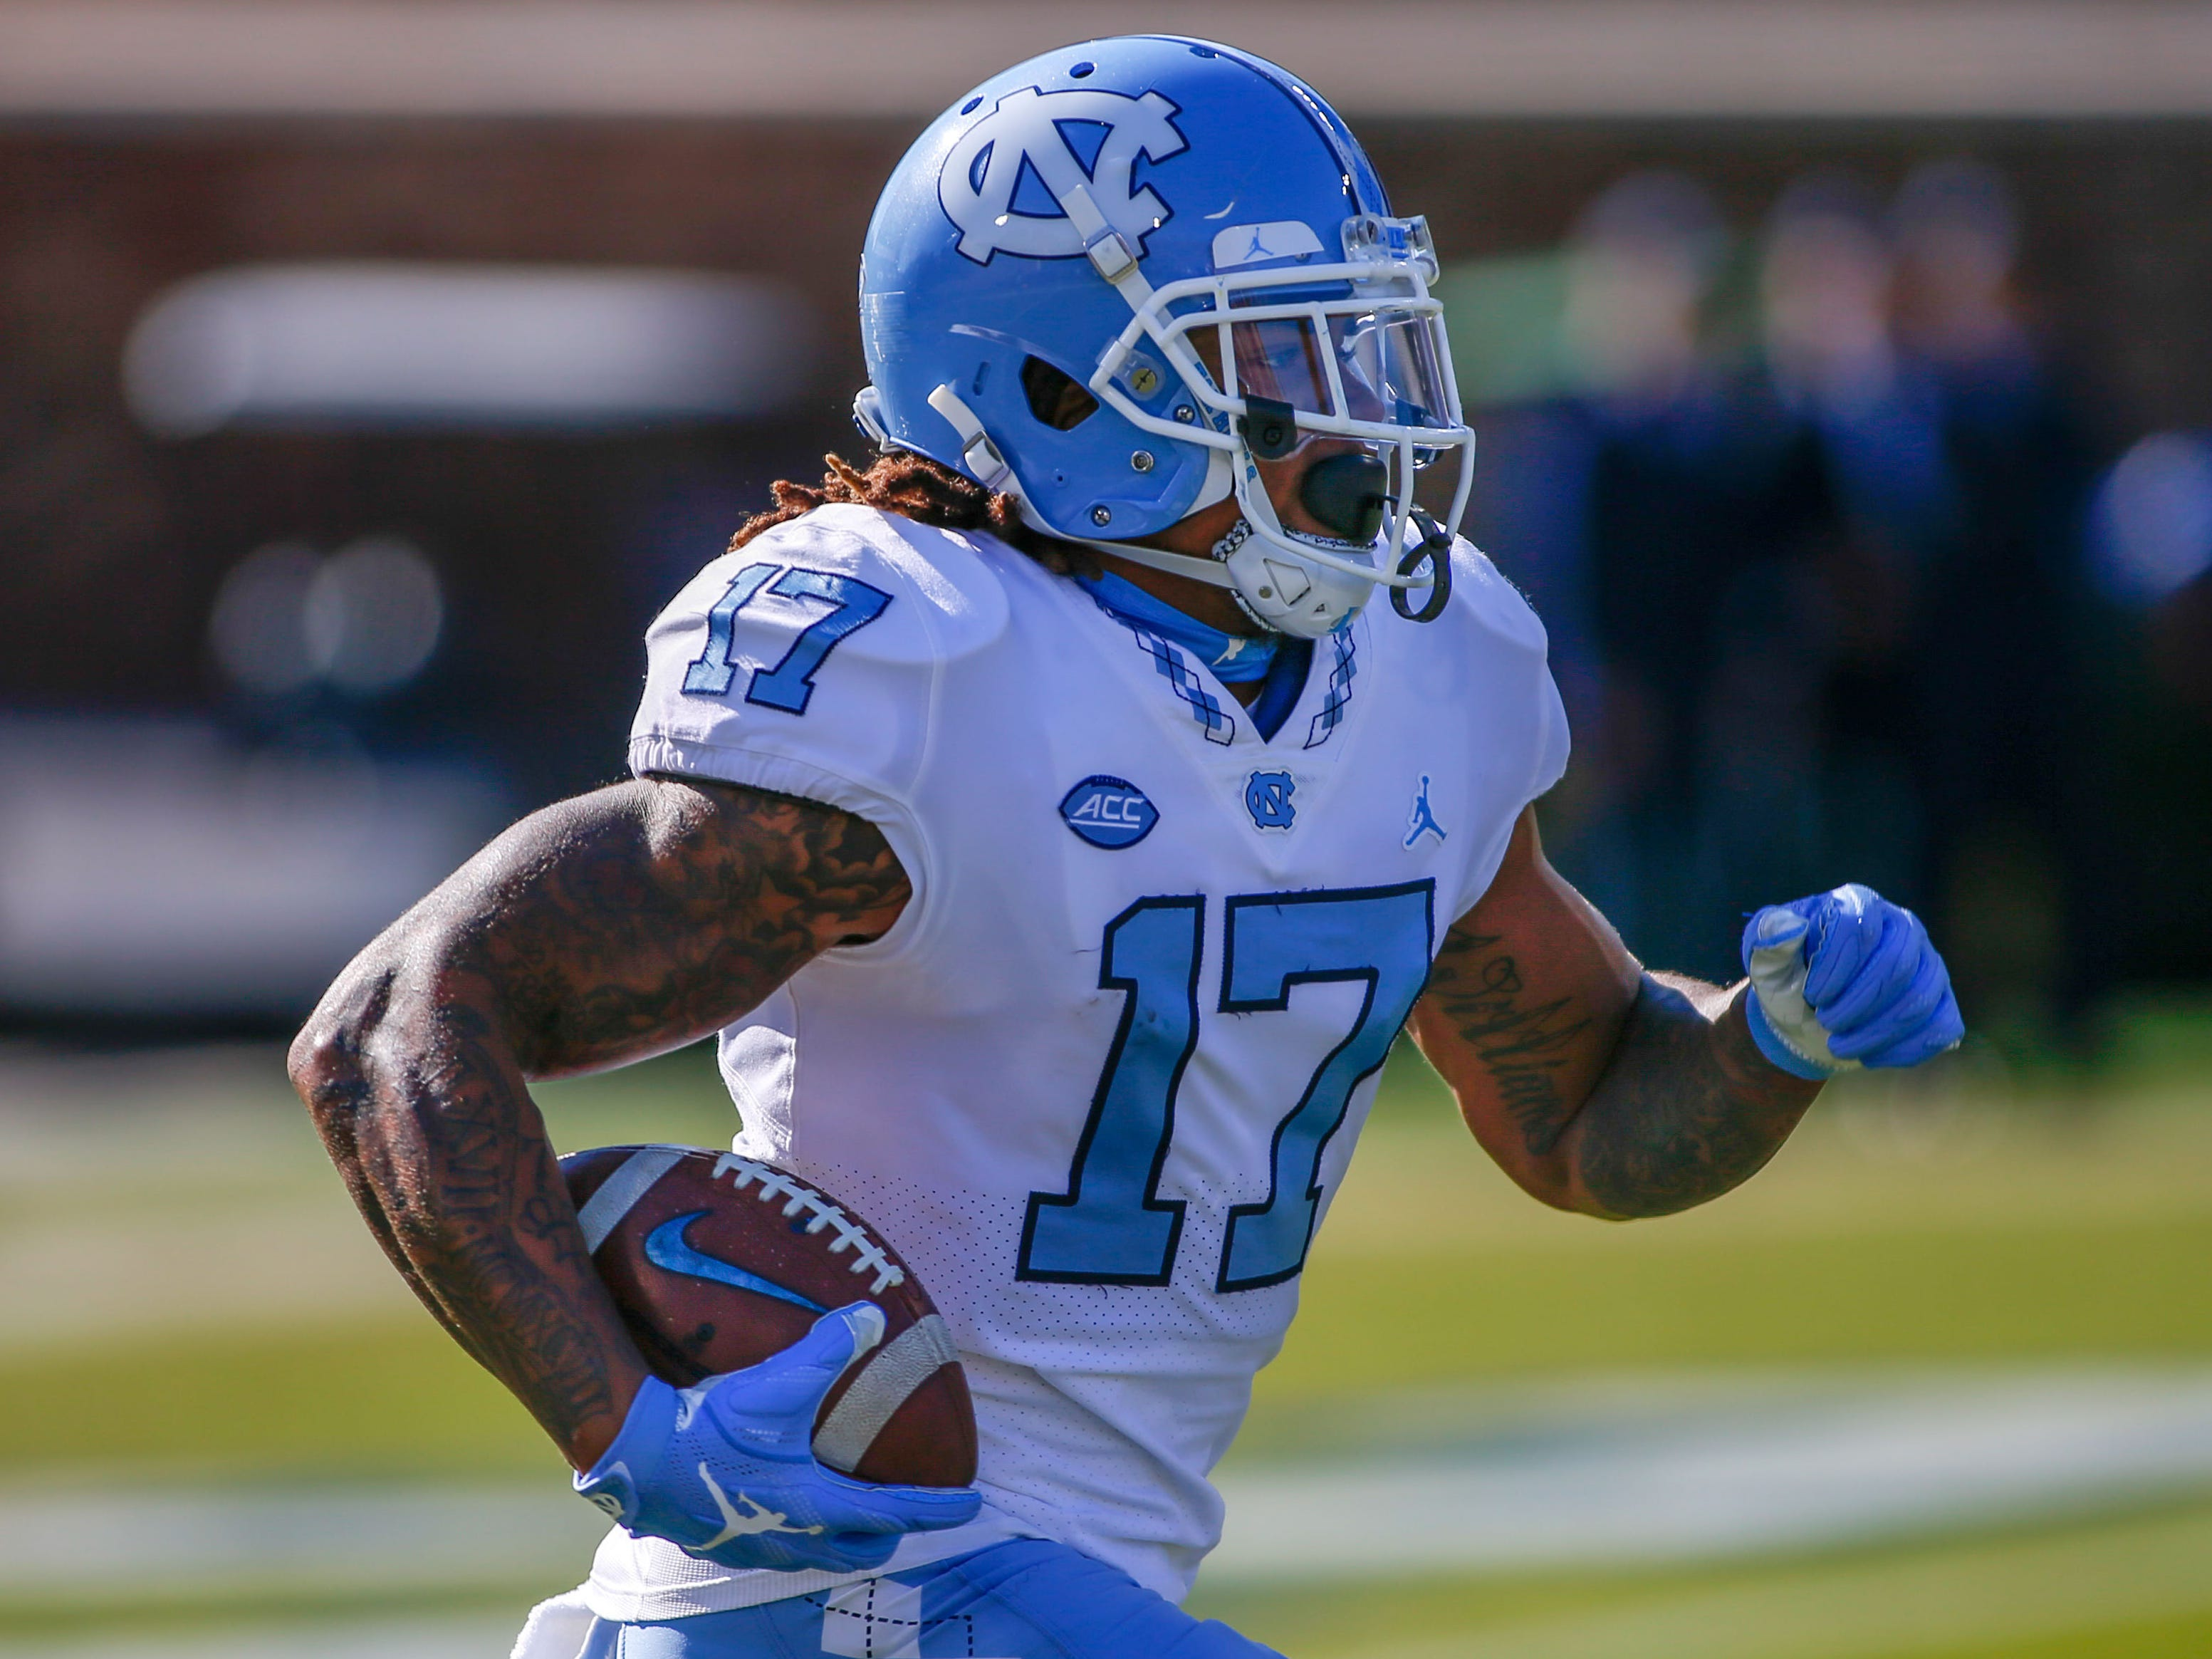 Anthony Ratliff-Williams, WR, North Carolina